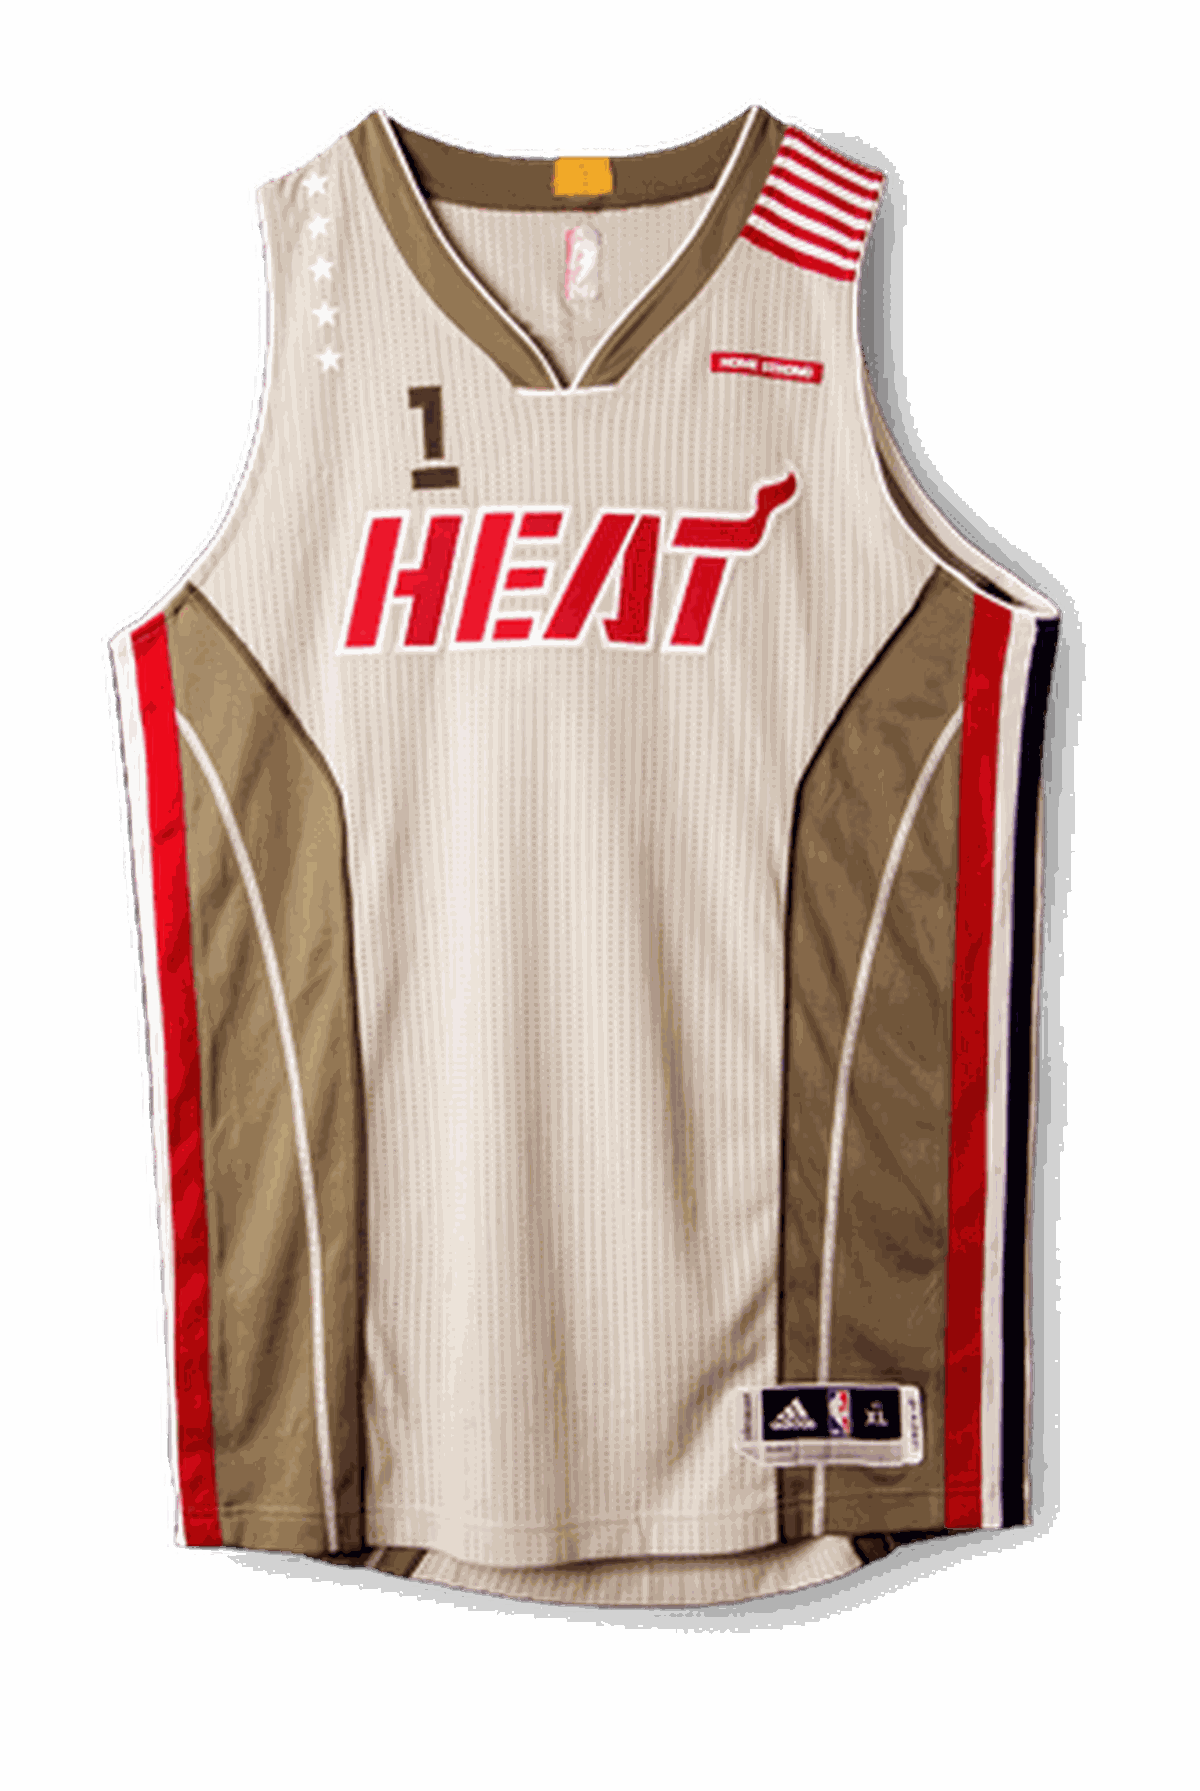 Miami Heat unveil new jerseys for 2015-16 season - Hot Hot ...